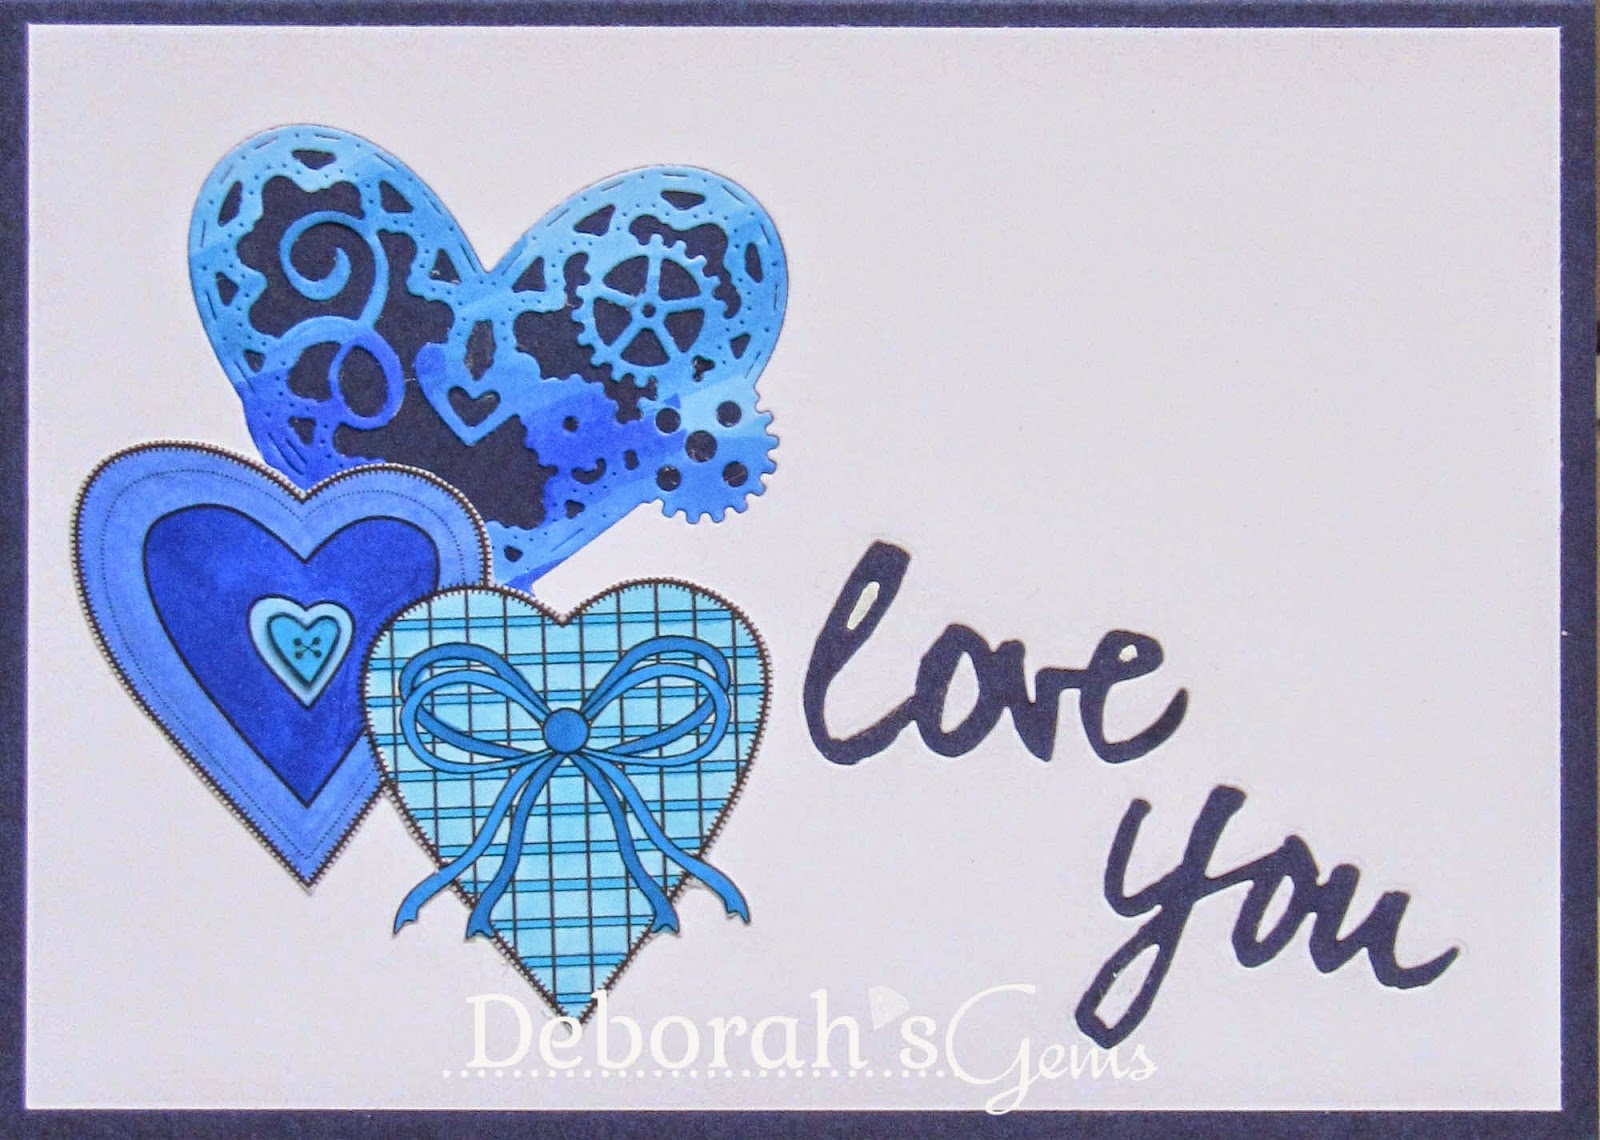 Love You - photo by Deborah Frings - Deborah's Gems